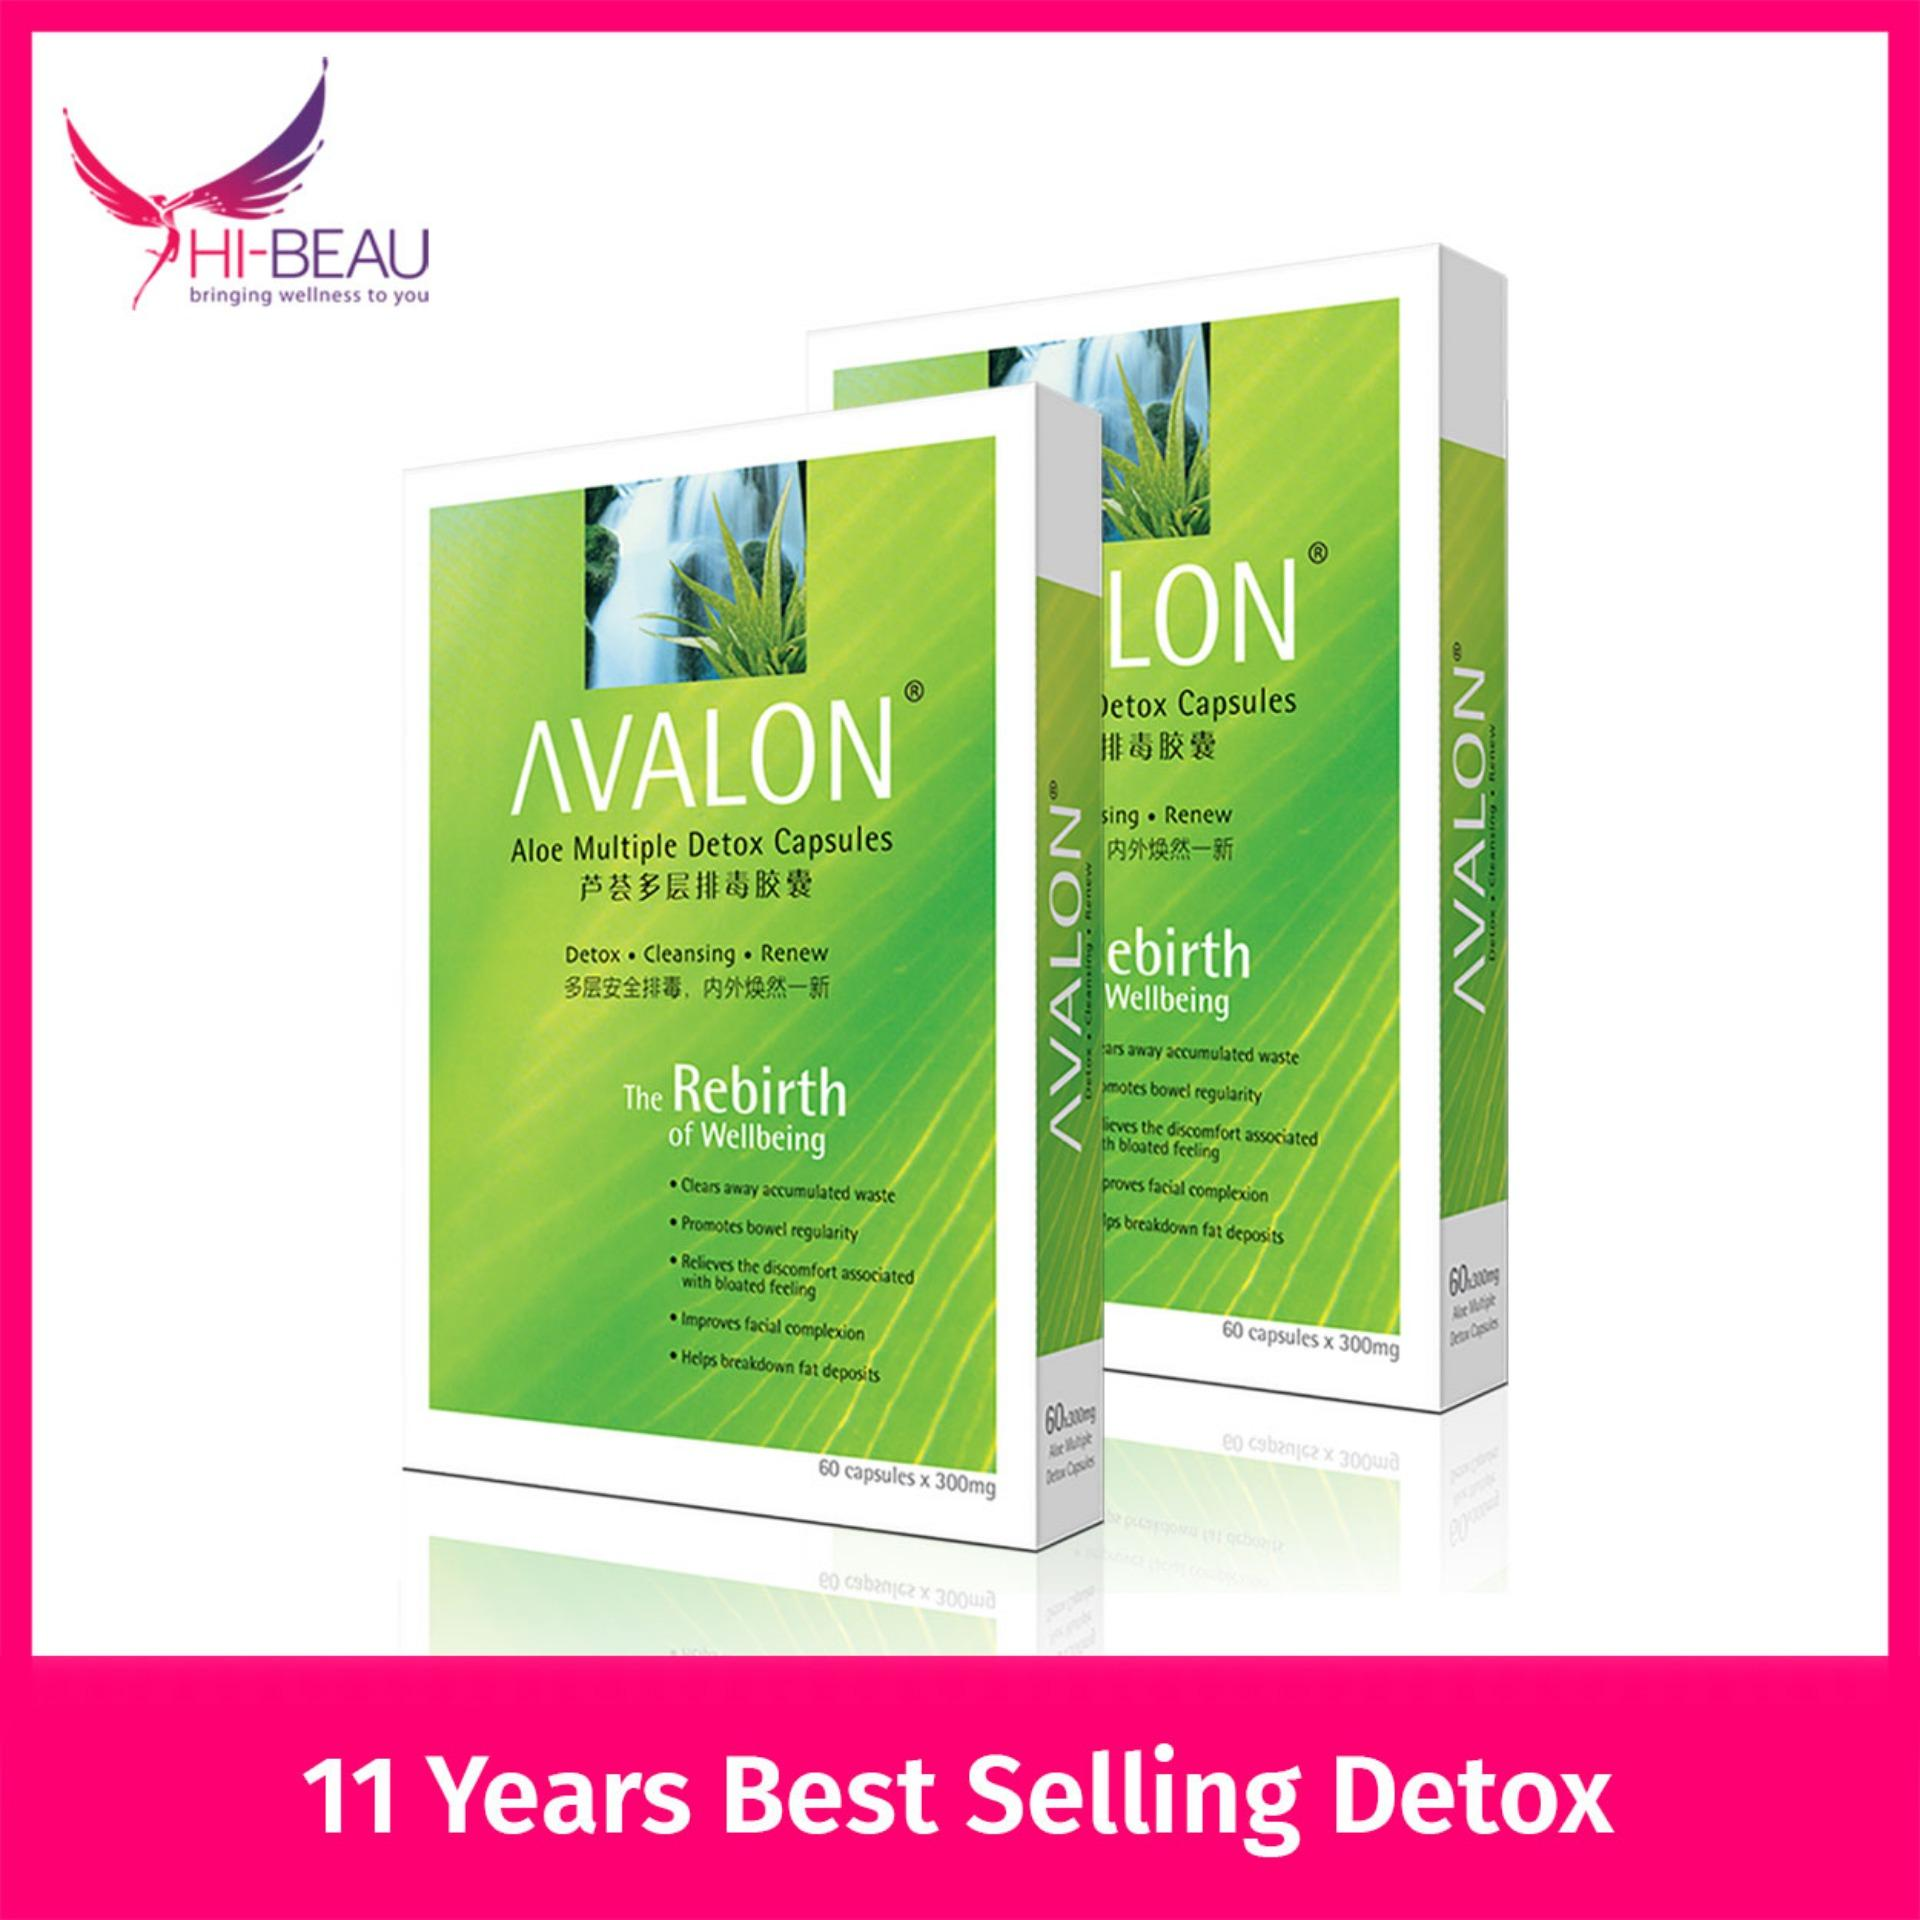 Avalon Aloe Multiple Detox Capsules Twin Pack Coupon